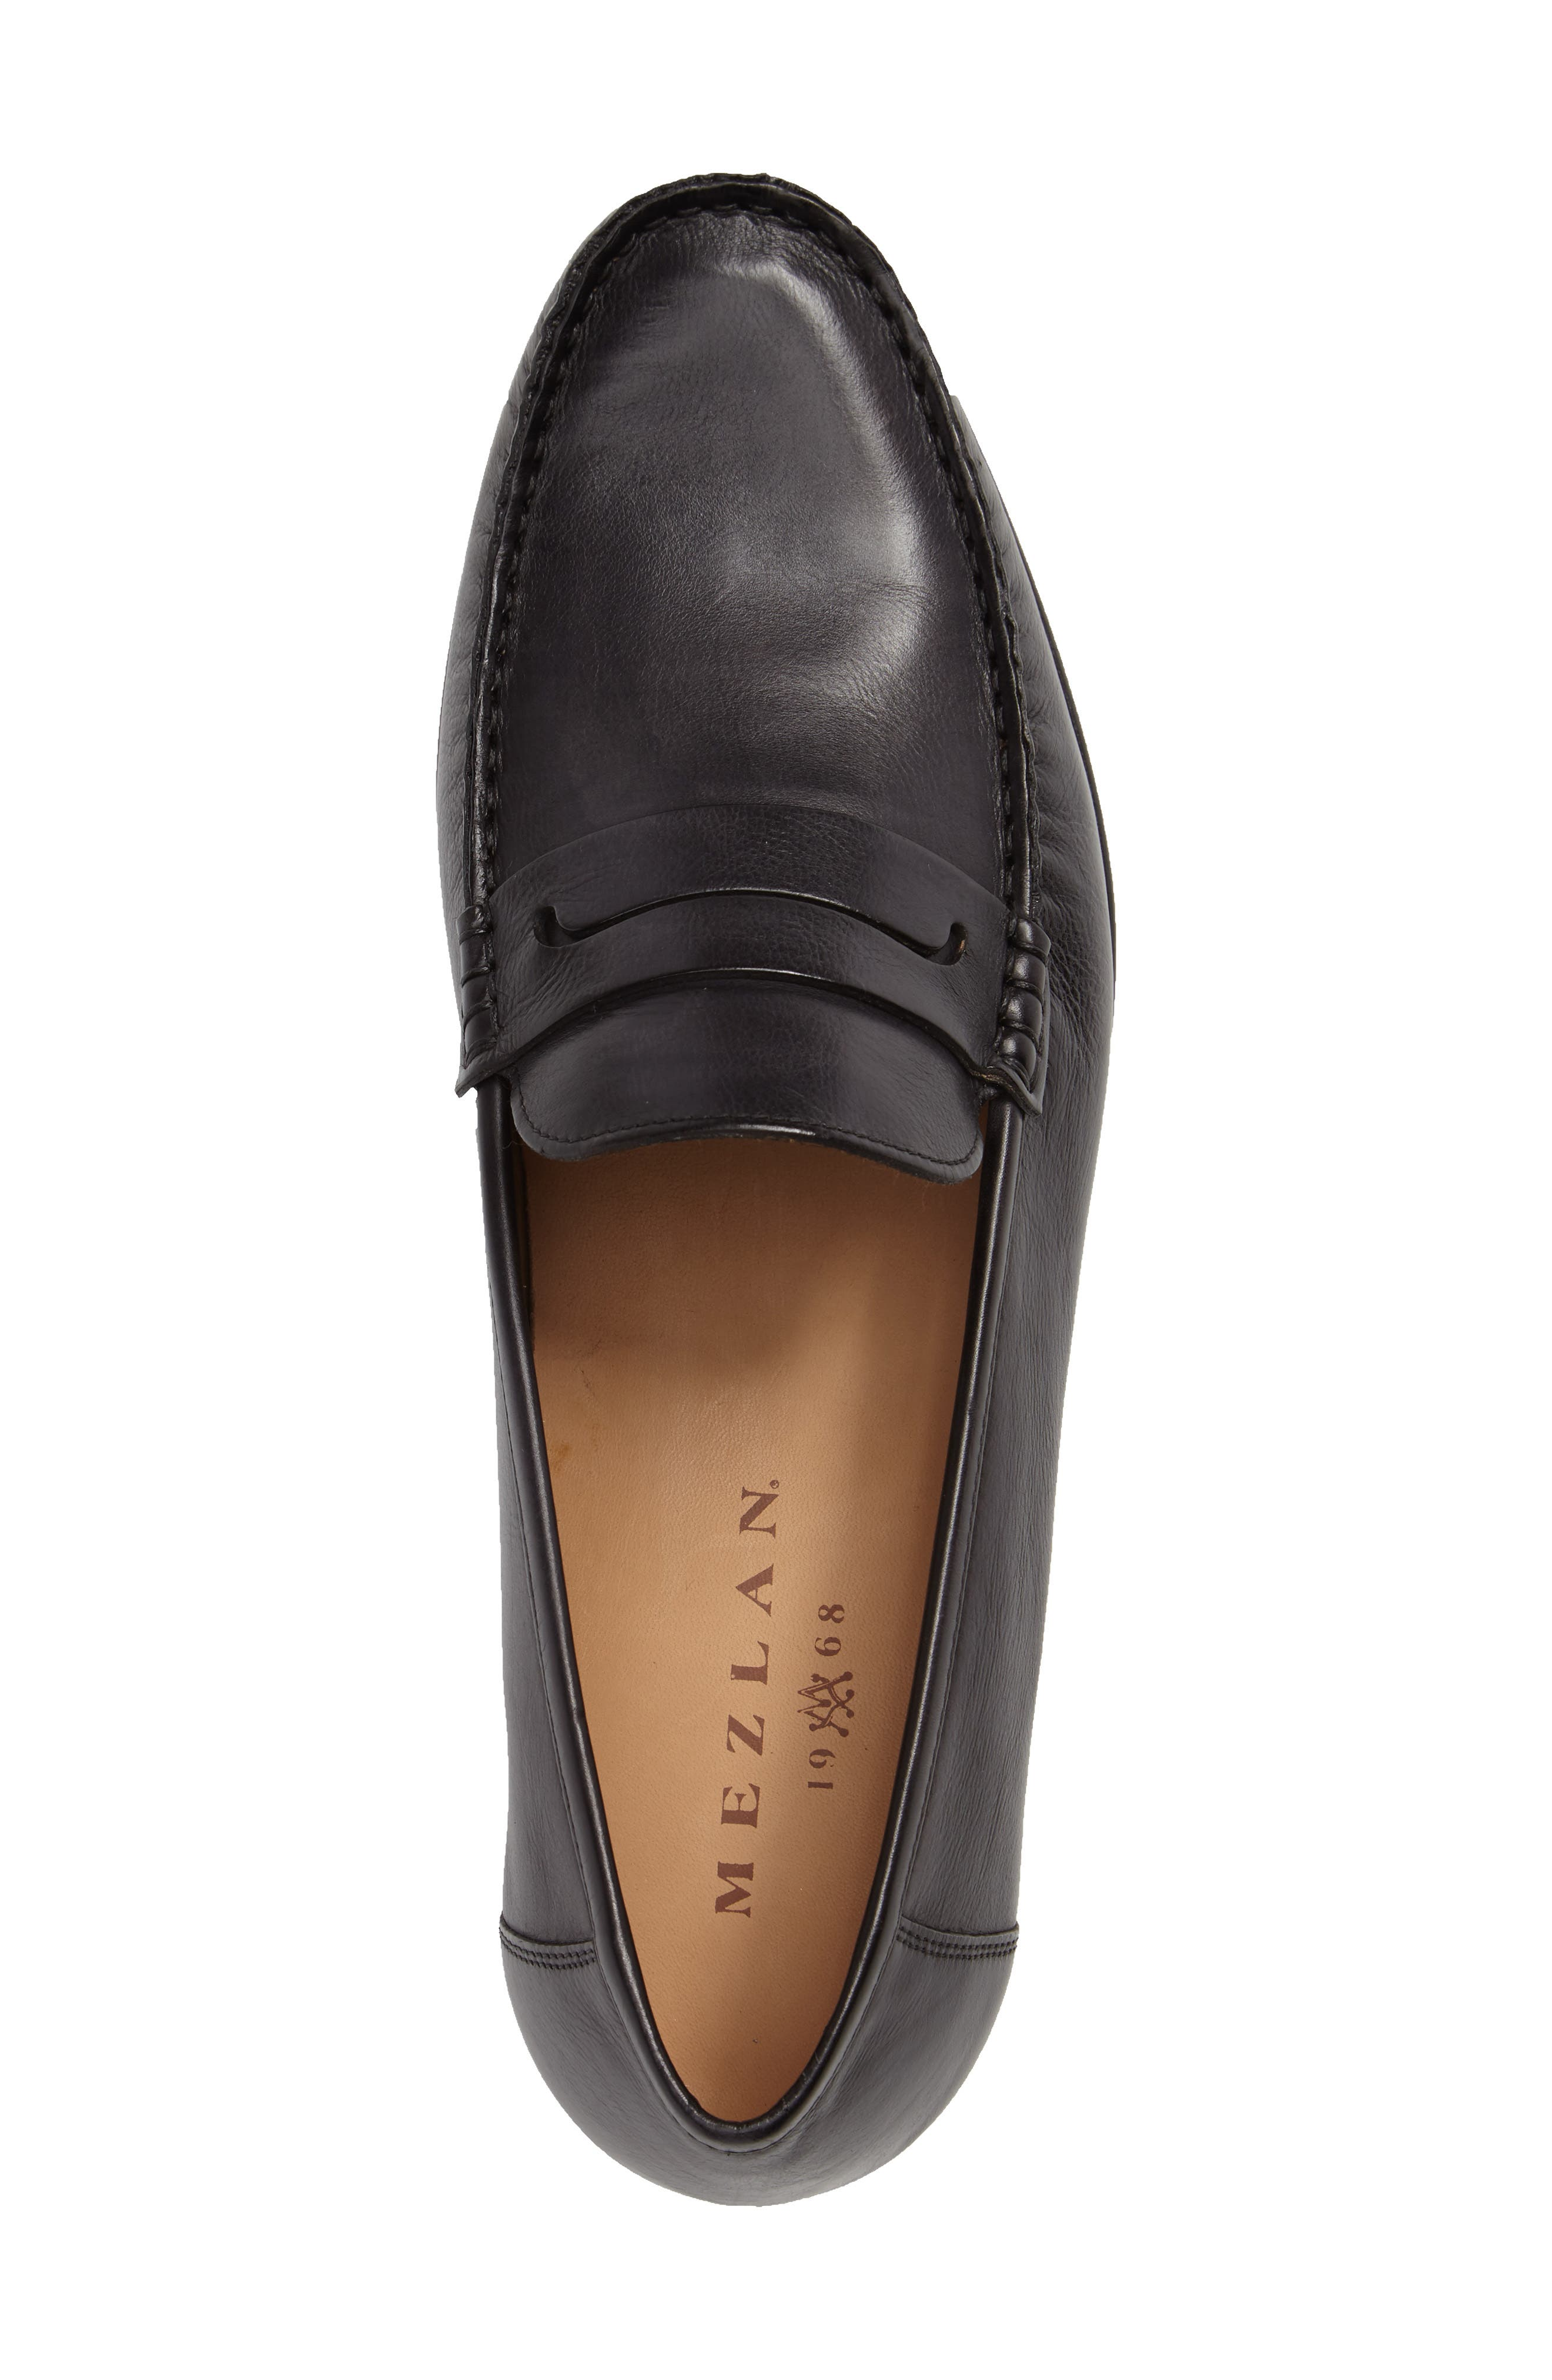 Pauli Classic Penny Loafer,                             Alternate thumbnail 3, color,                             BLACK LEATHER